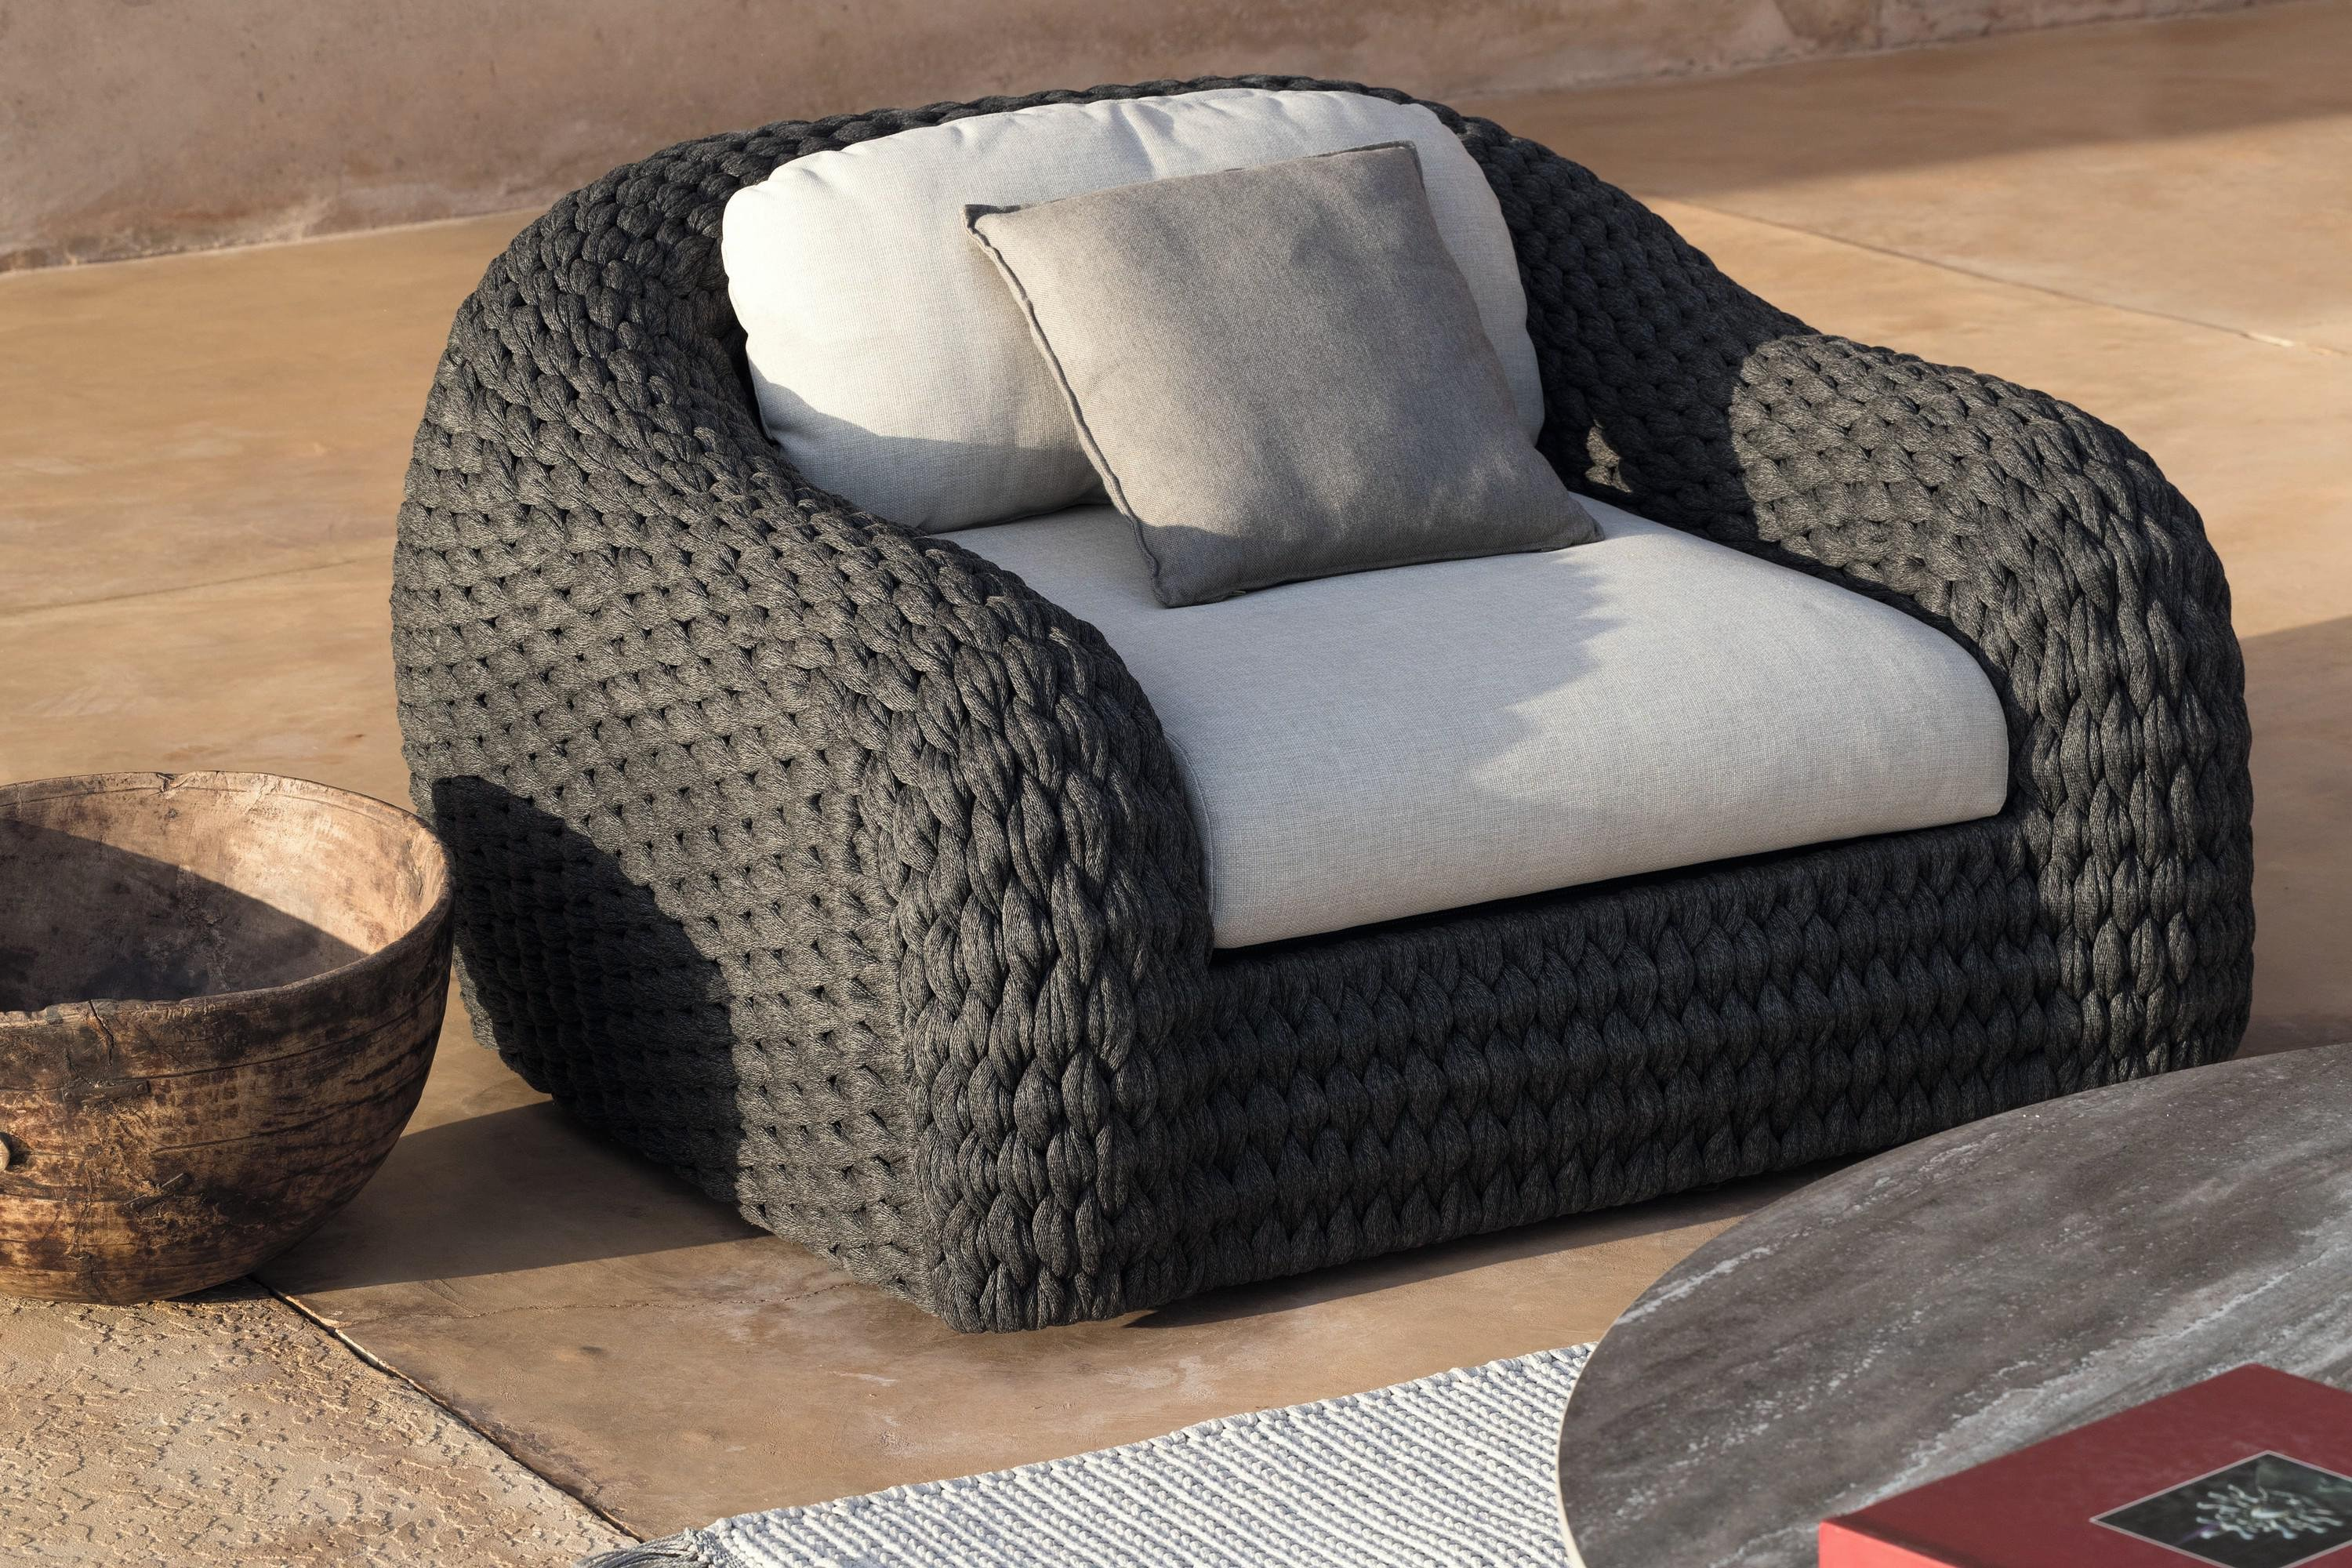 Kobo Lounge Chair from Manutti, designed by Stephane De Winter